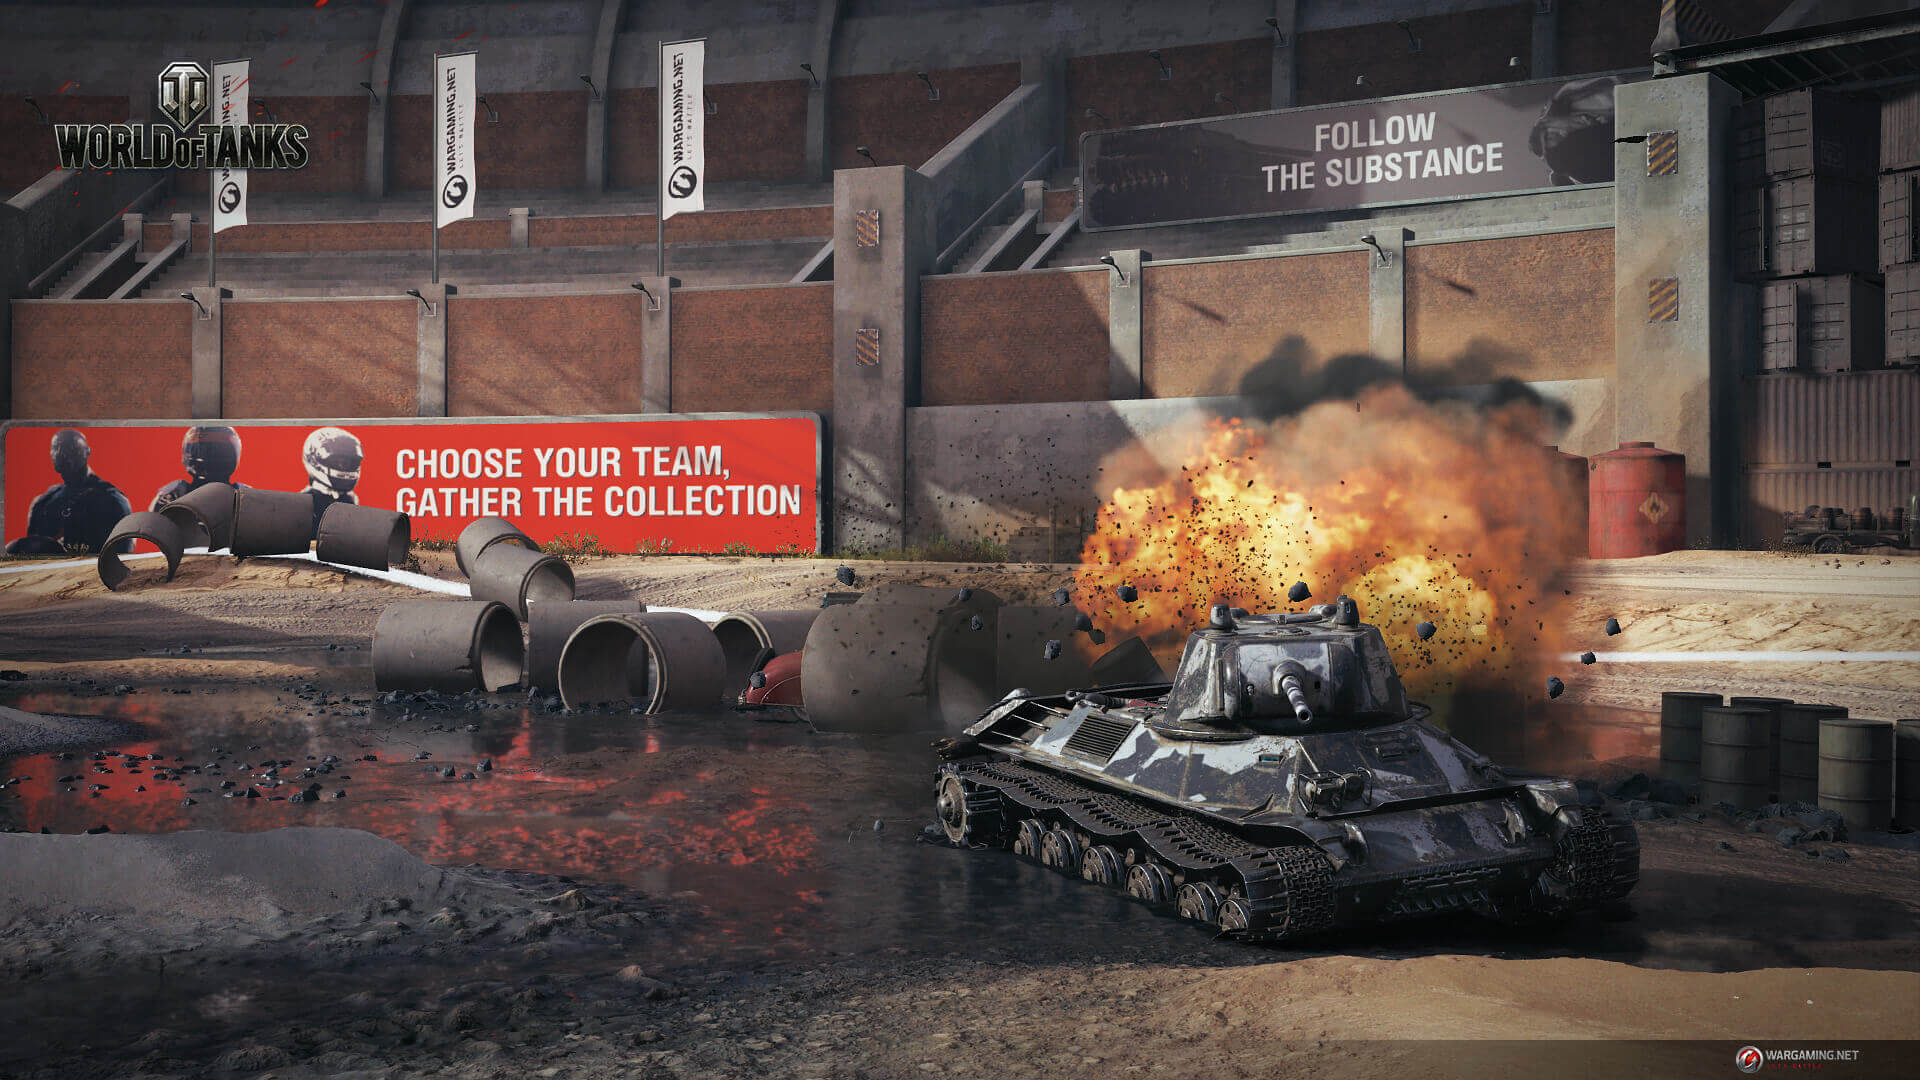 Обои World of tanks, мир танков, wot, chaffee sport, wargaming net, wg. Игры foto 8